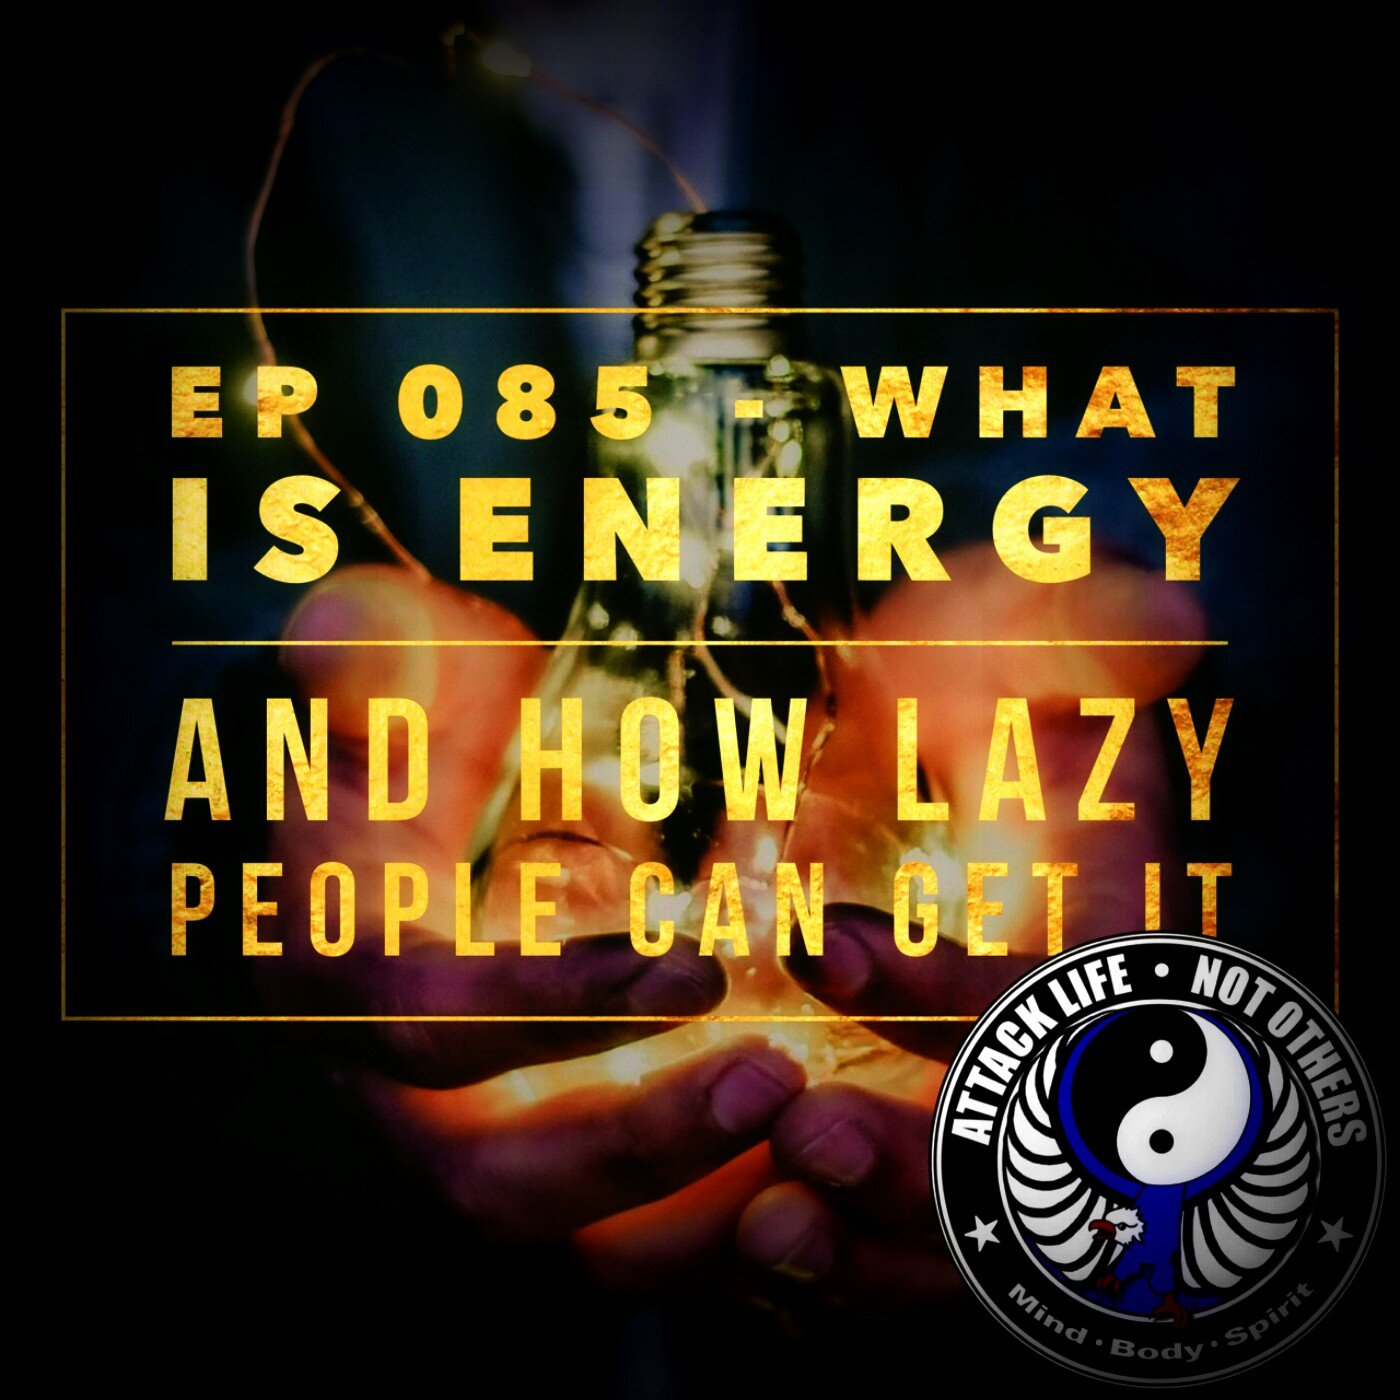 Ep 085 - What is Energy and How Lazy People Can Get It